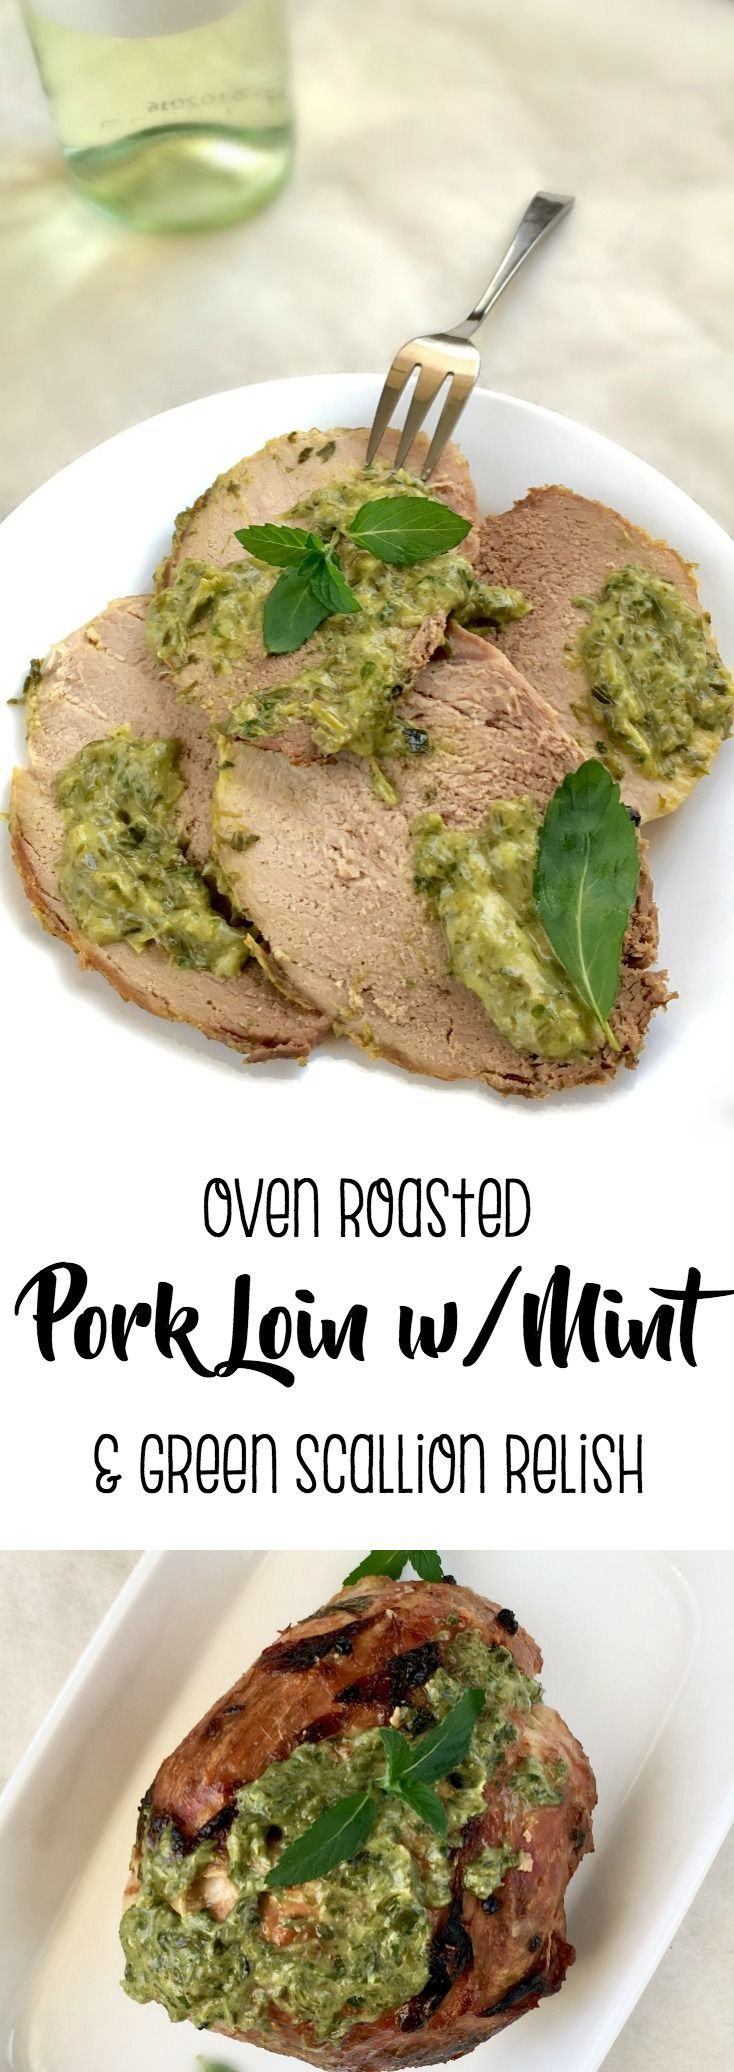 Oven Roasted Pork Loin with Mint and Green Scallion Relish - Super Yum!!